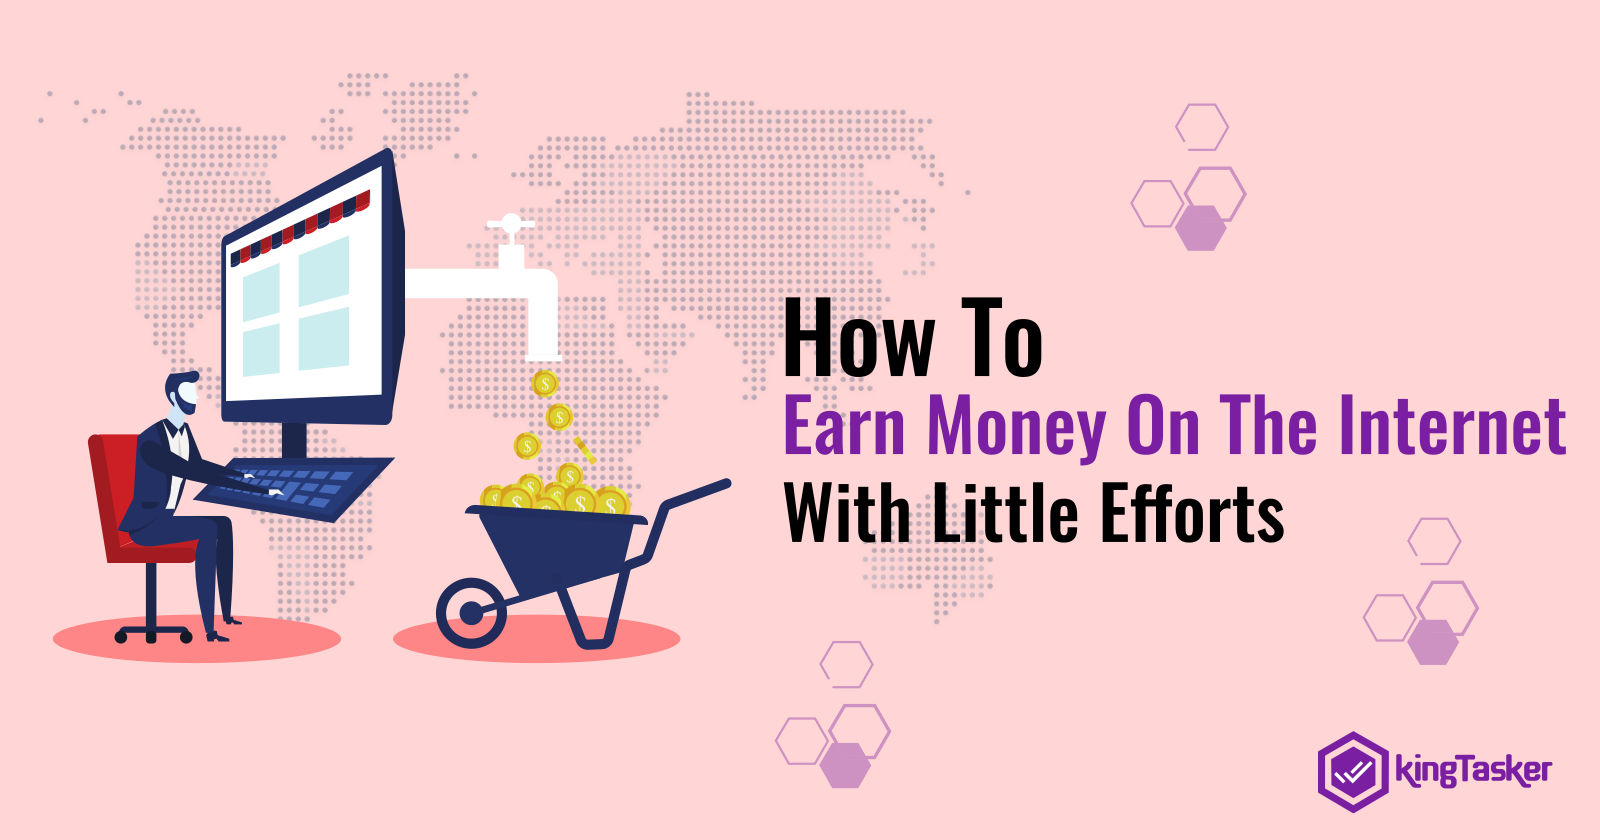 How To Earn Money On The Internet With Little Efforts